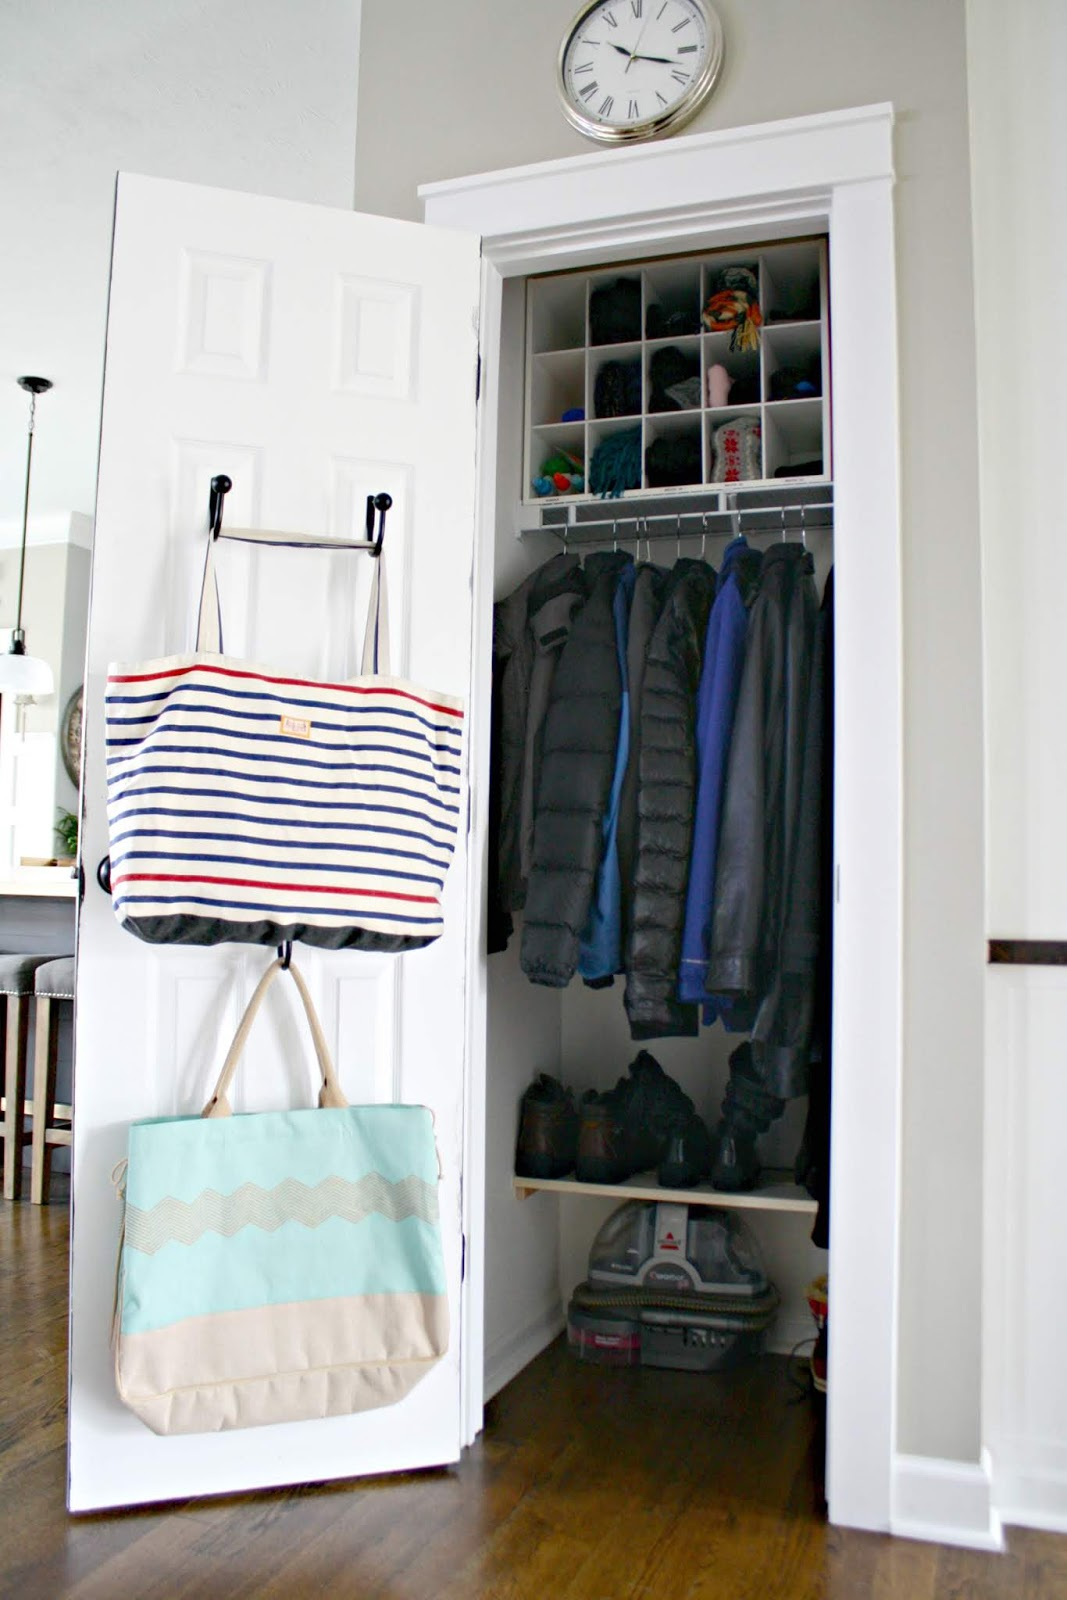 Hacks to get things organized in coat closet